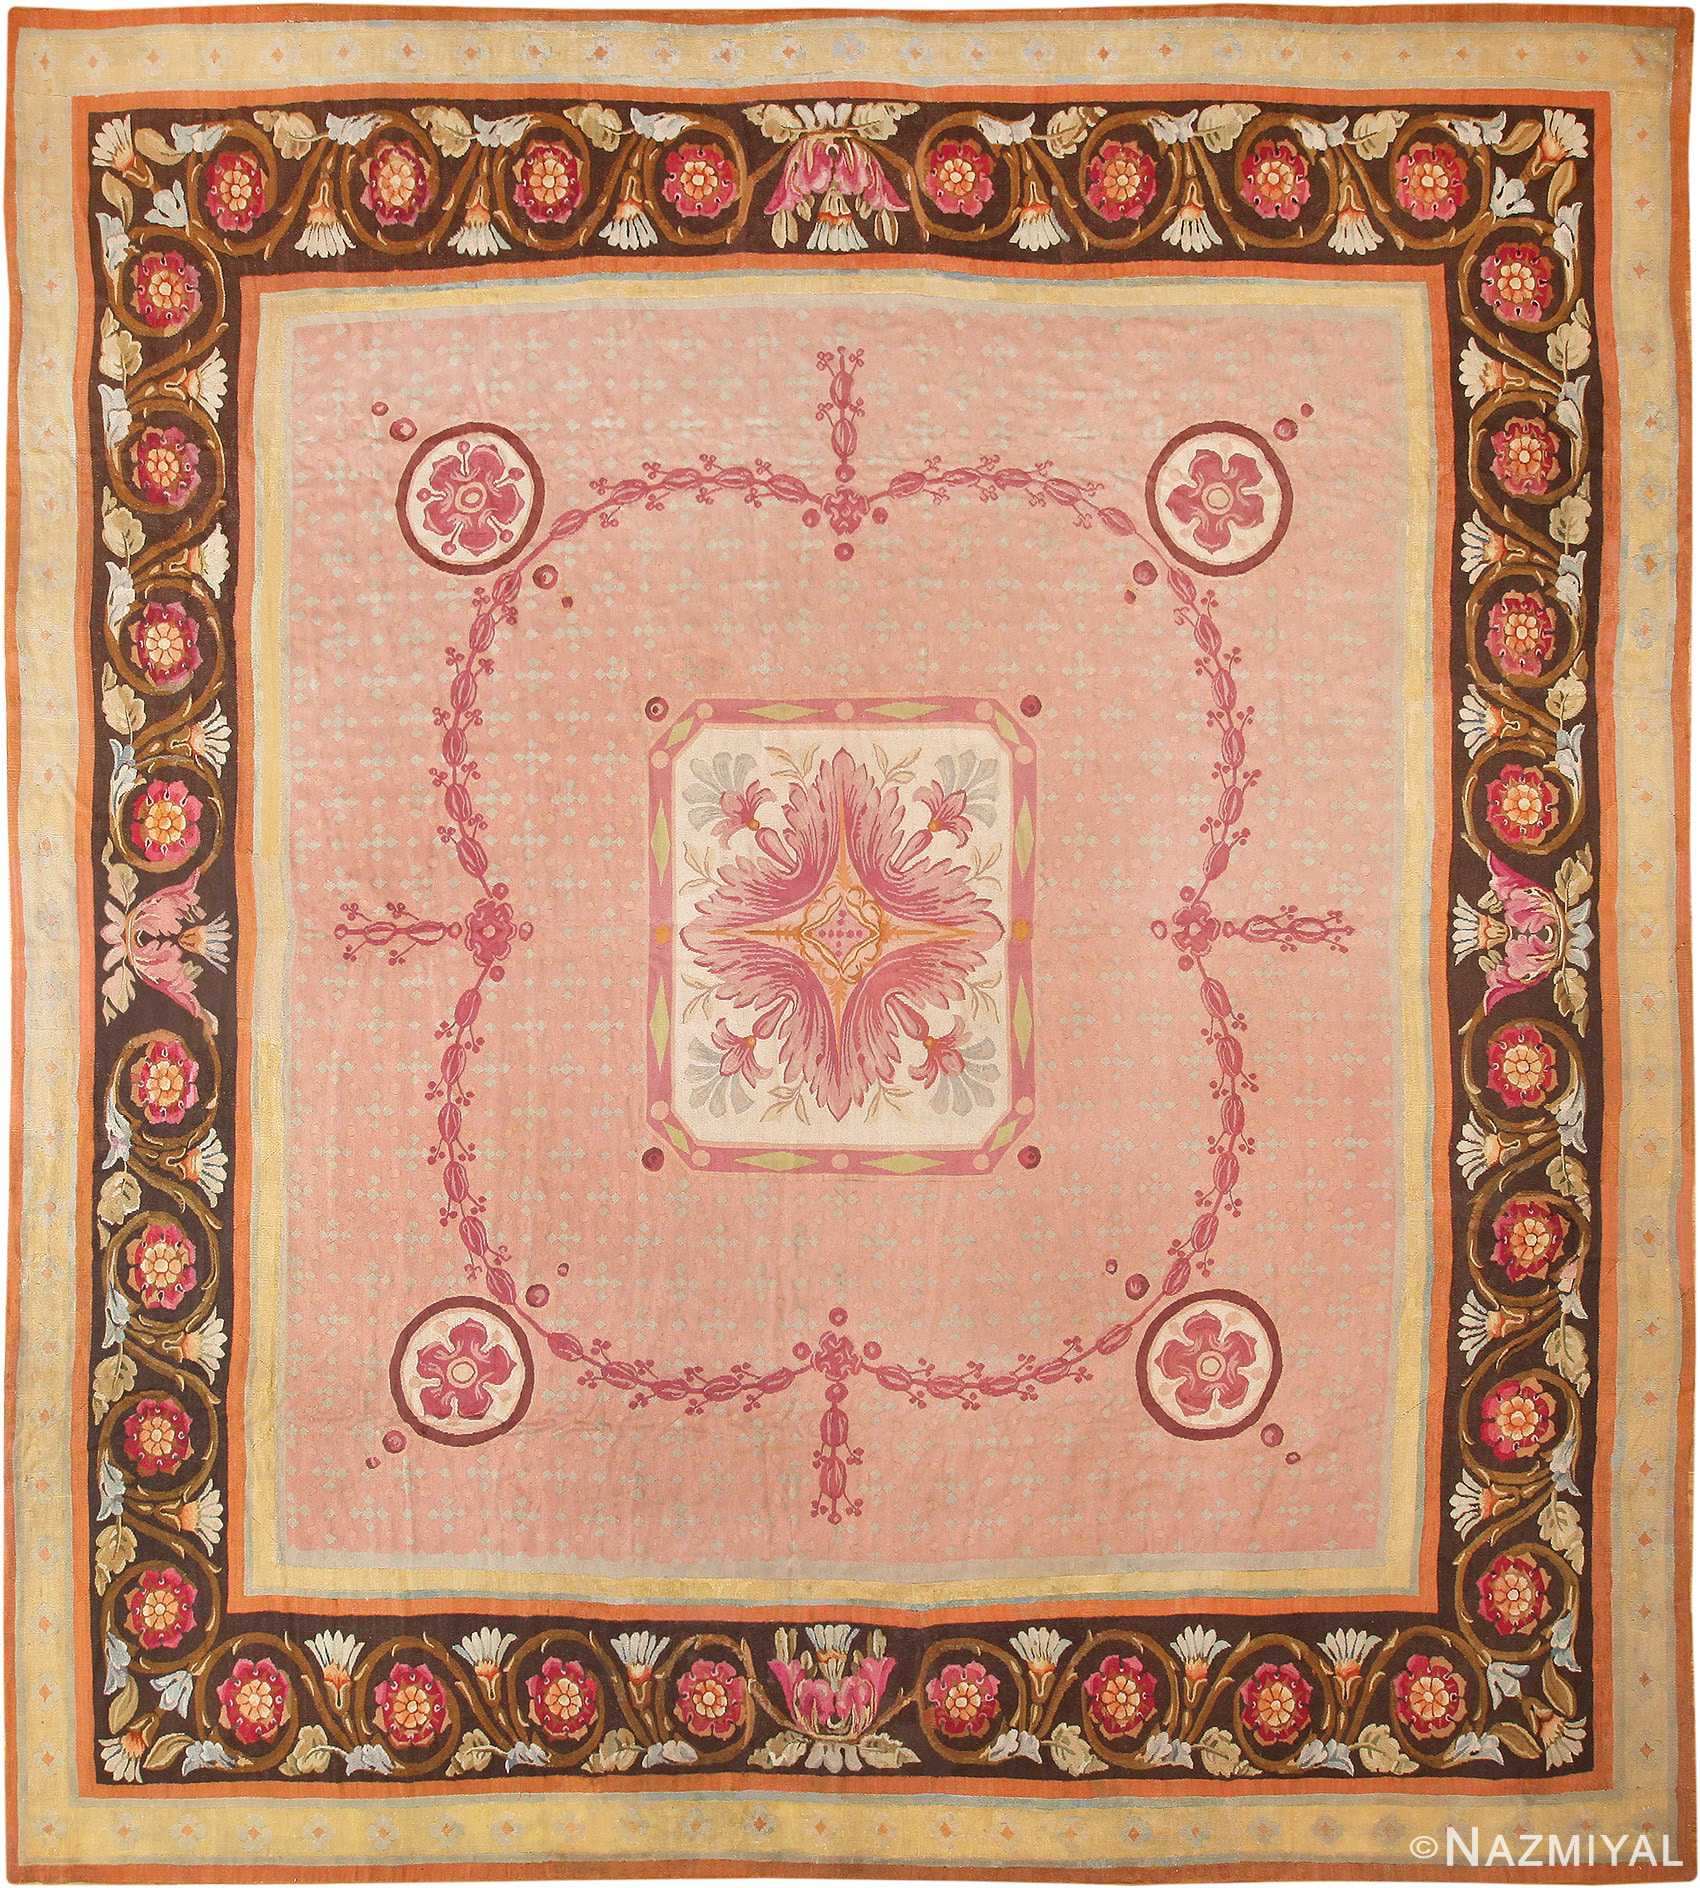 Picture of the Floral Square Antique French Aubusson Carpet #70011 from Nazmiyal Antique Rugs in NYC